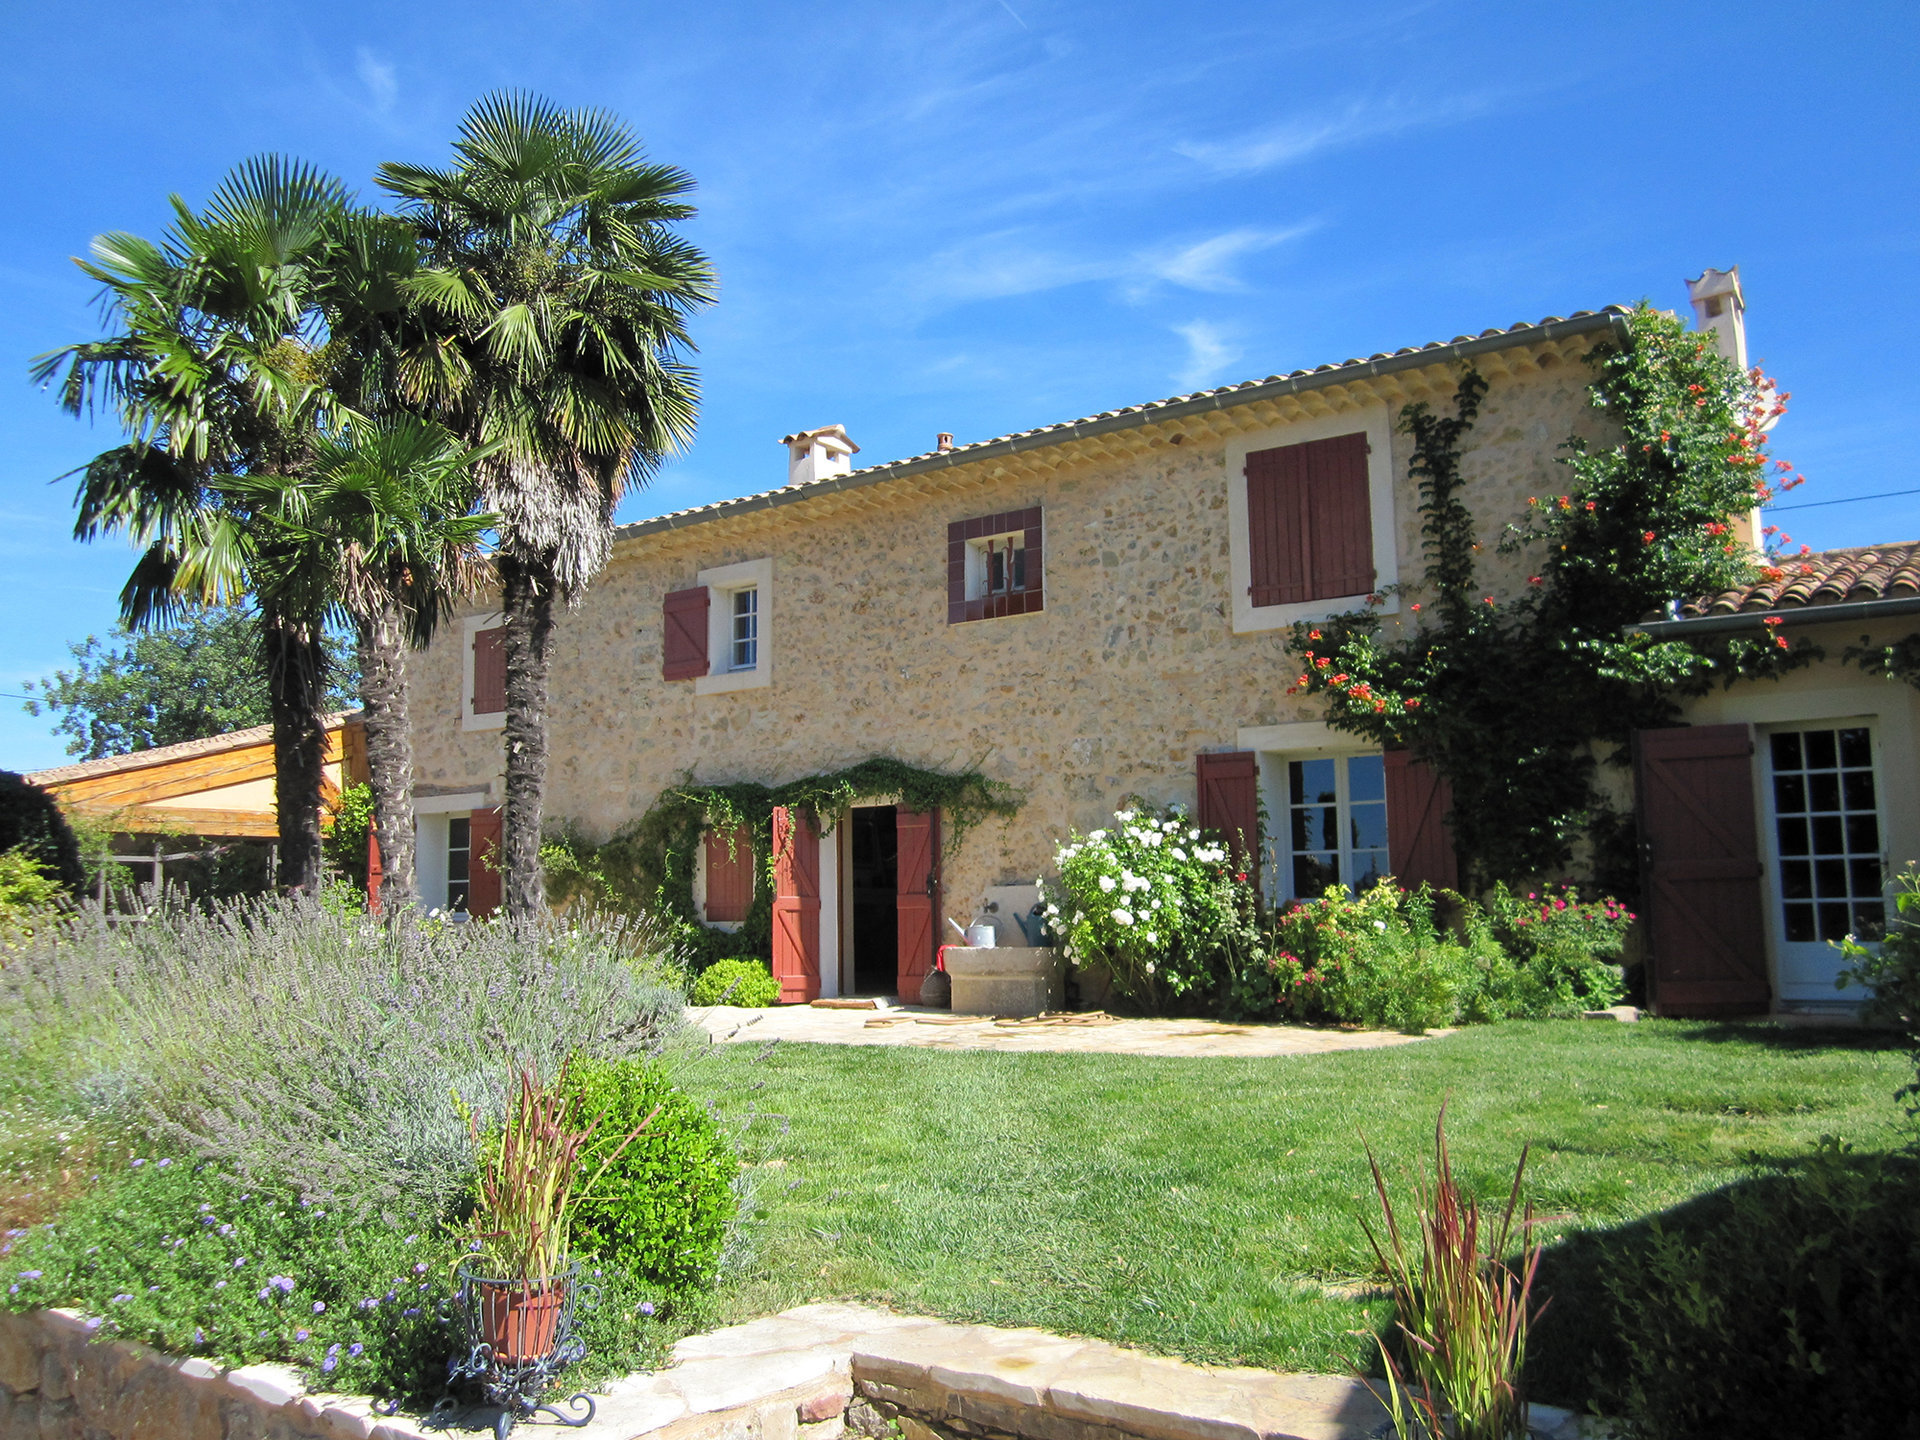 Stone Mas Cotignac 3 bedroom house + guesthouse swimmingpool, olive grove, beautiful views